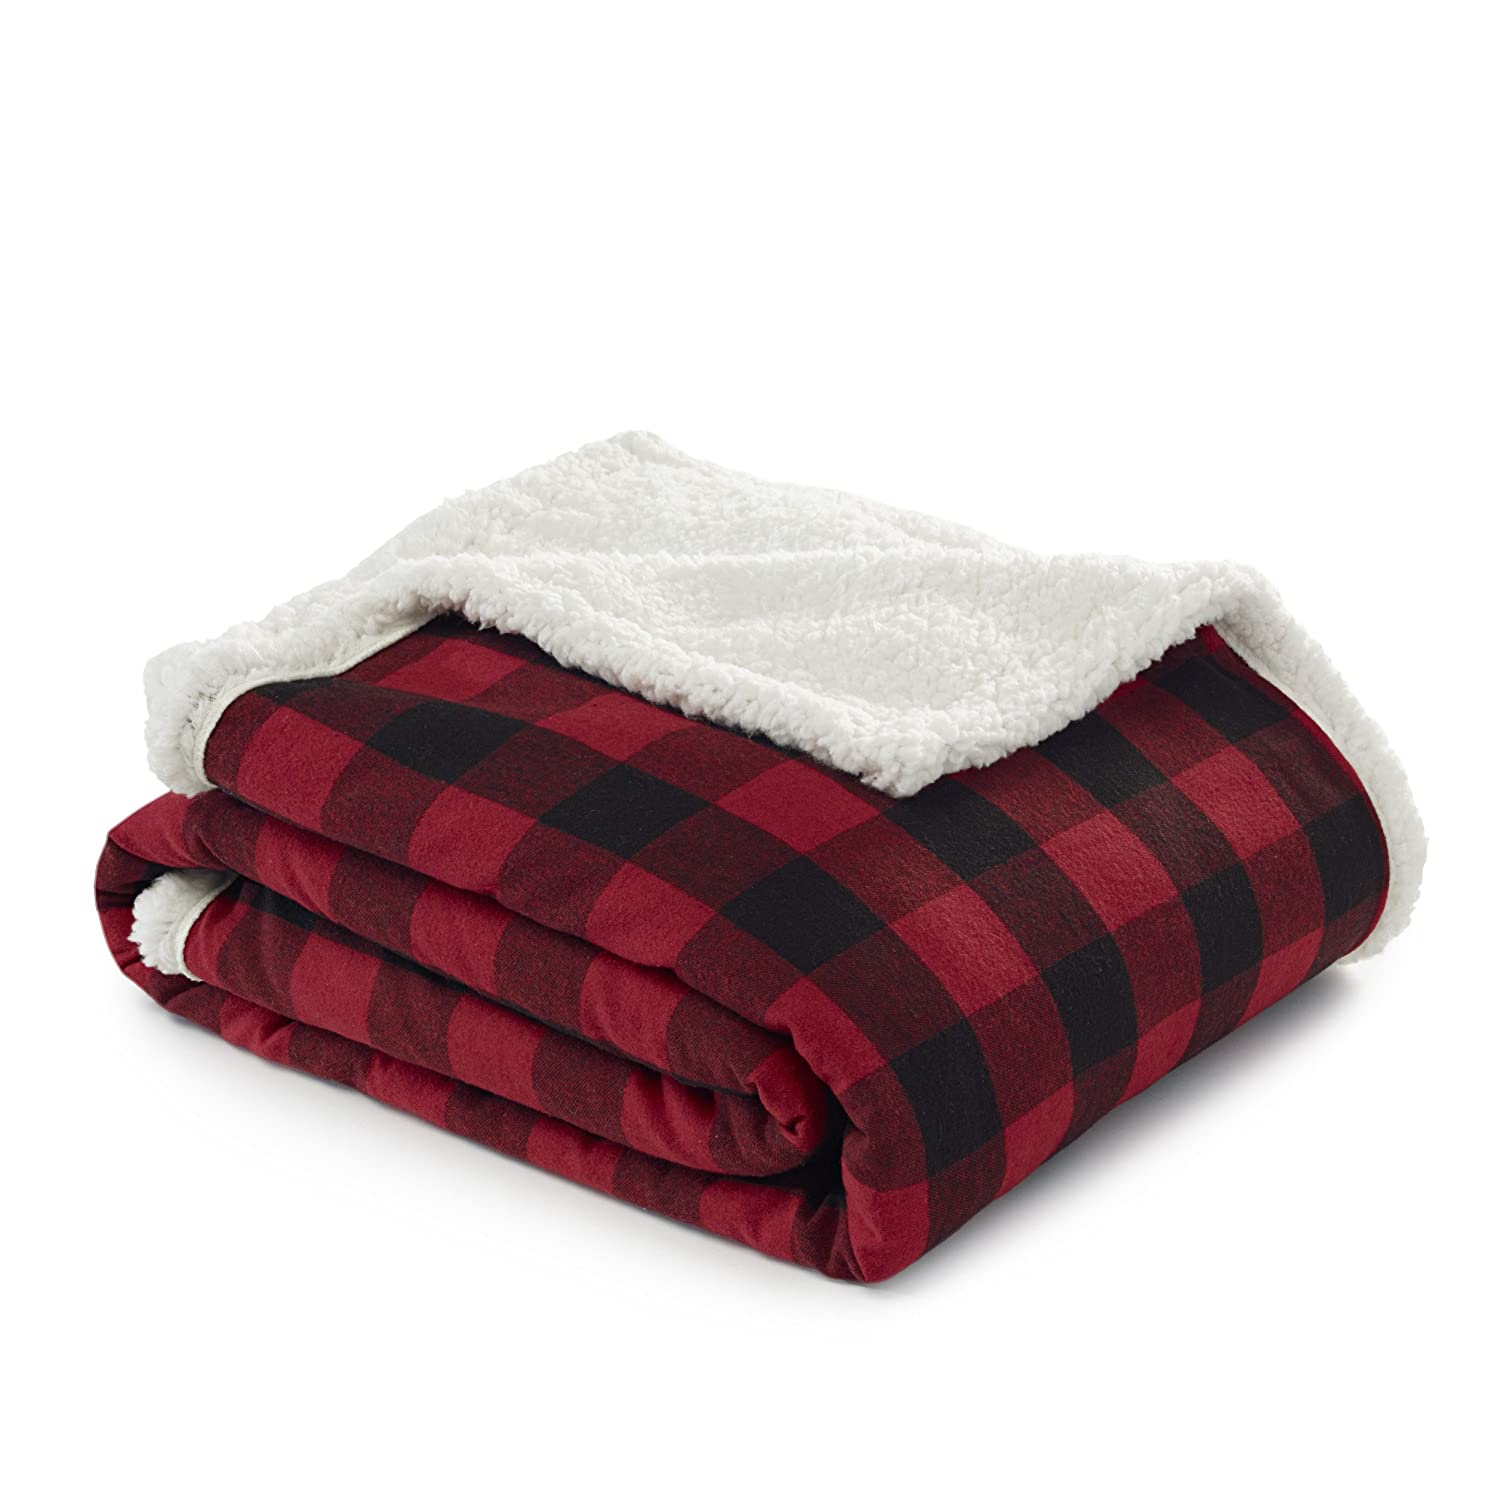 "Eddie Bauer Cabin Plaid Flannel Sherpa Throw, 50"" x 60"" Red"